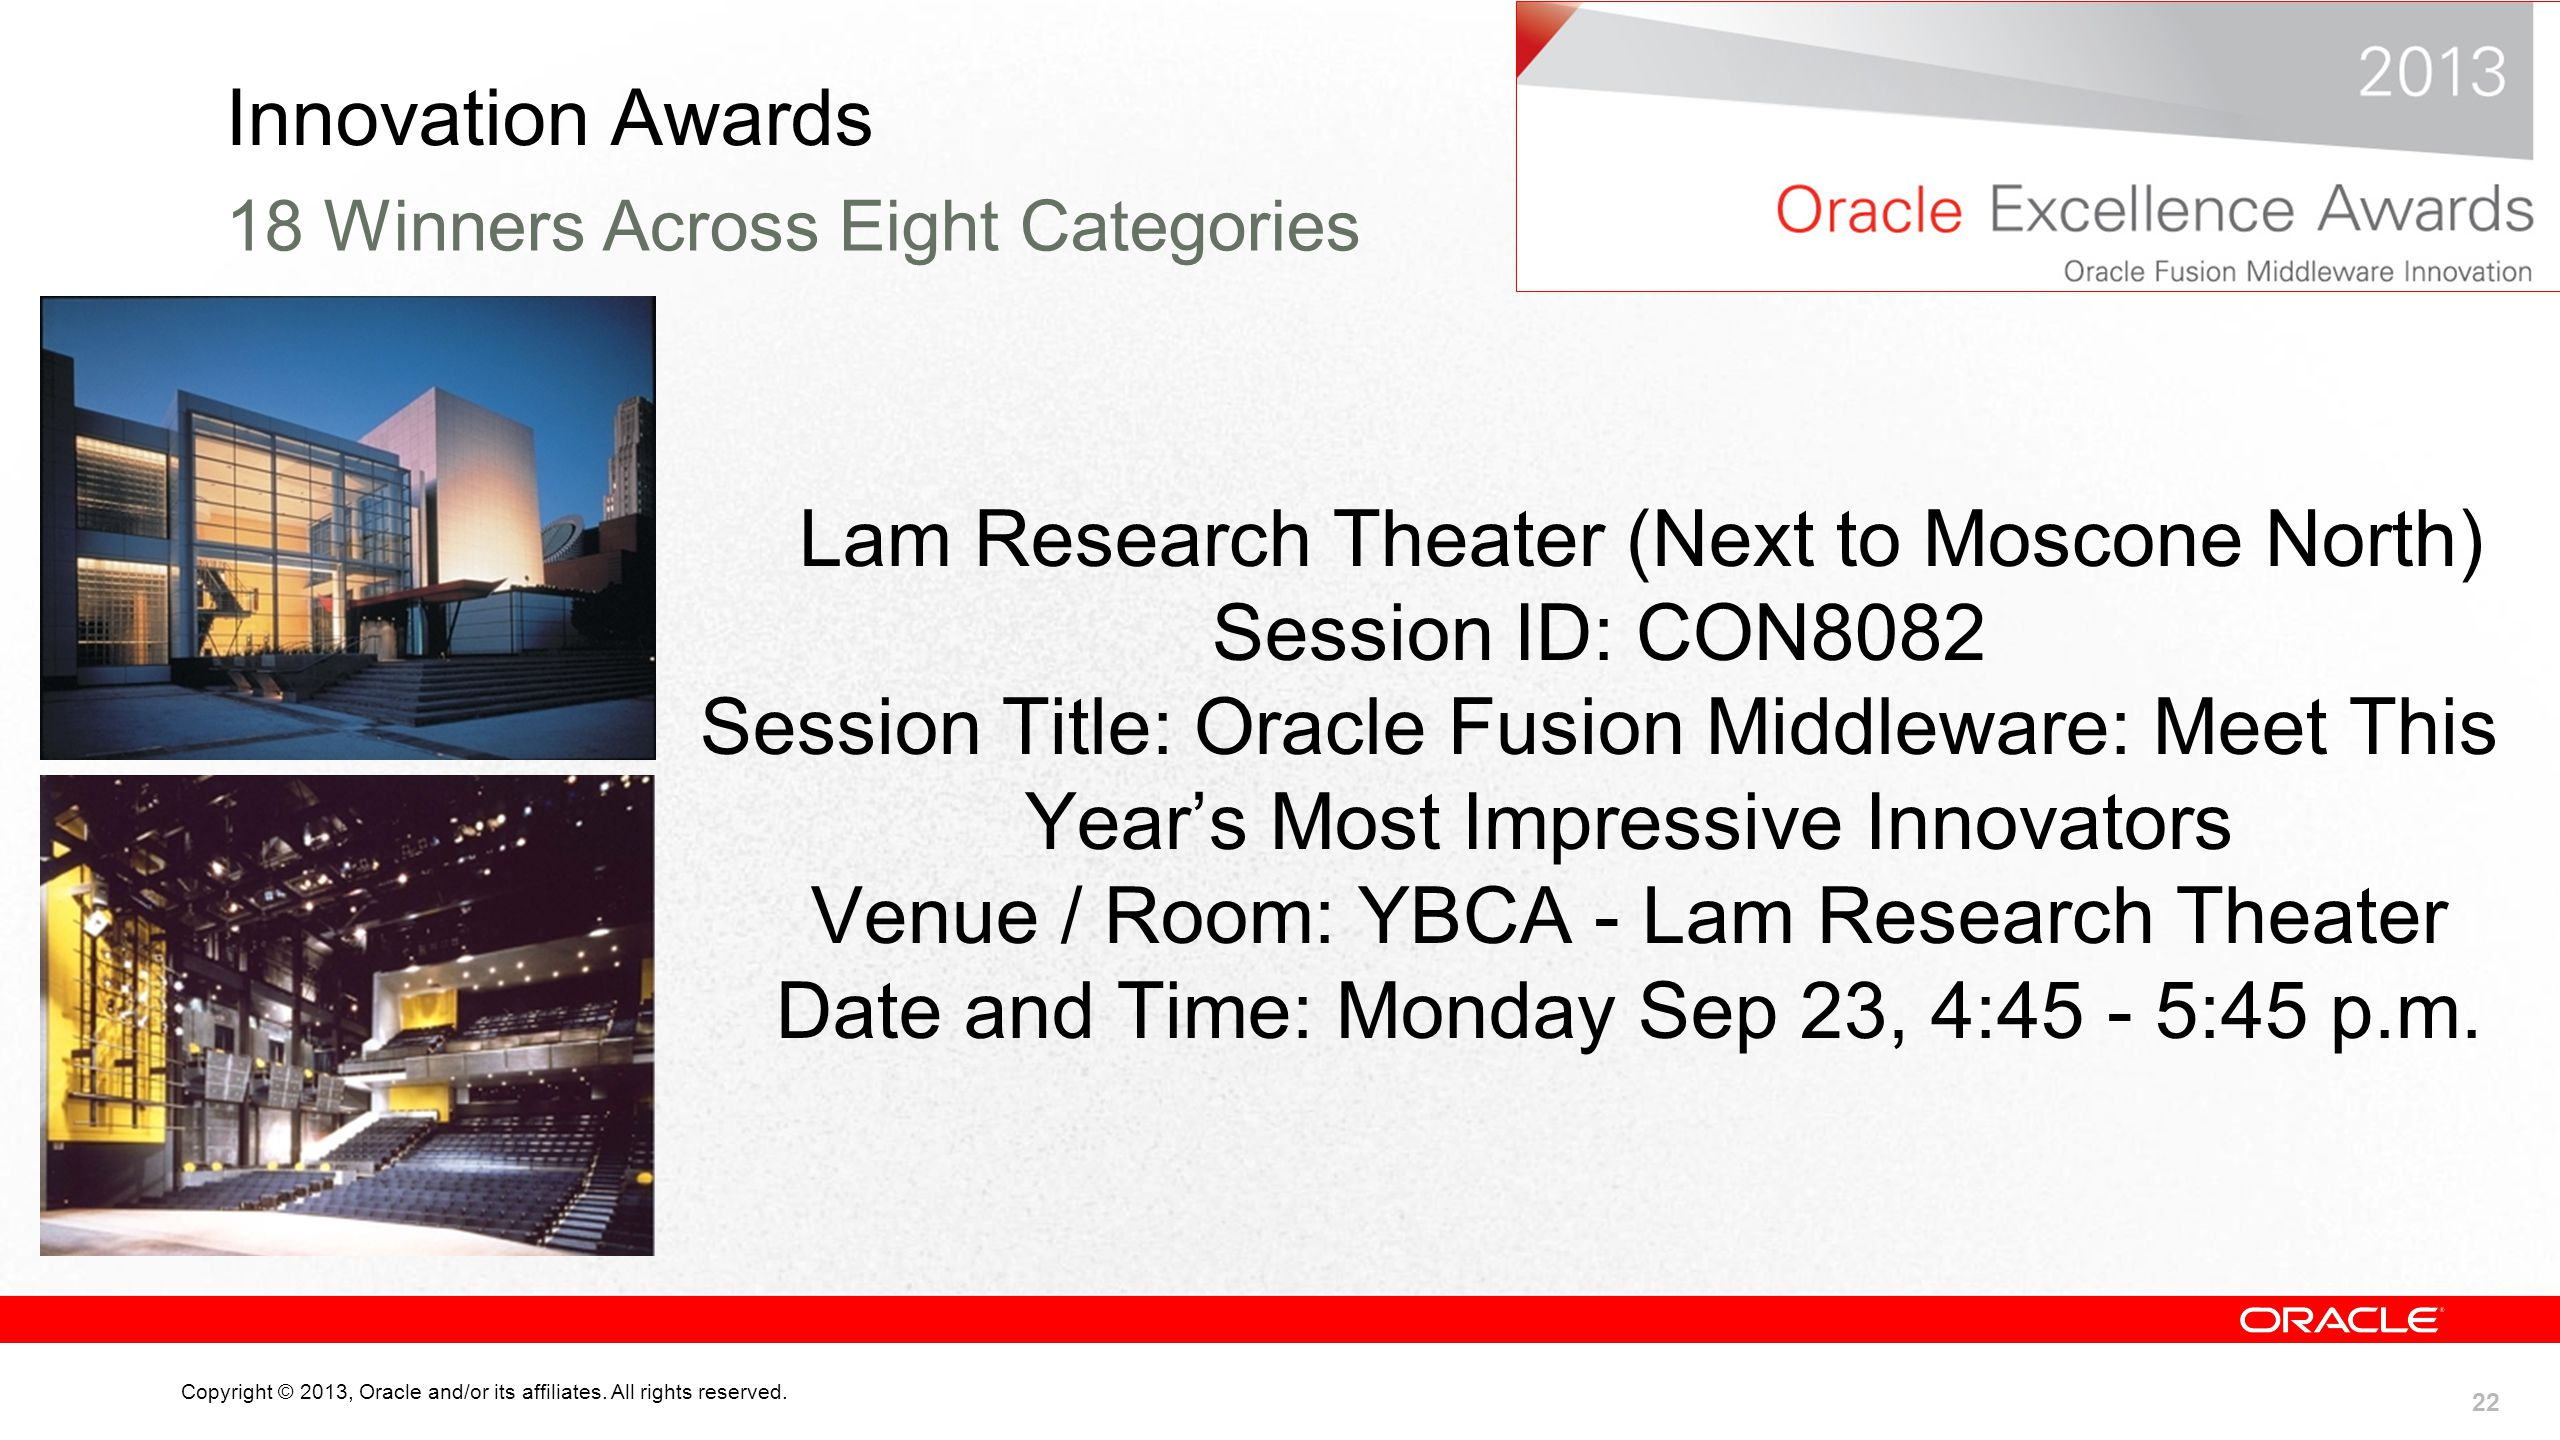 22 Copyright © 2013, Oracle and/or its affiliates. All rights reserved. Innovation Awards Lam Research Theater (Next to Moscone North) Session ID: CON